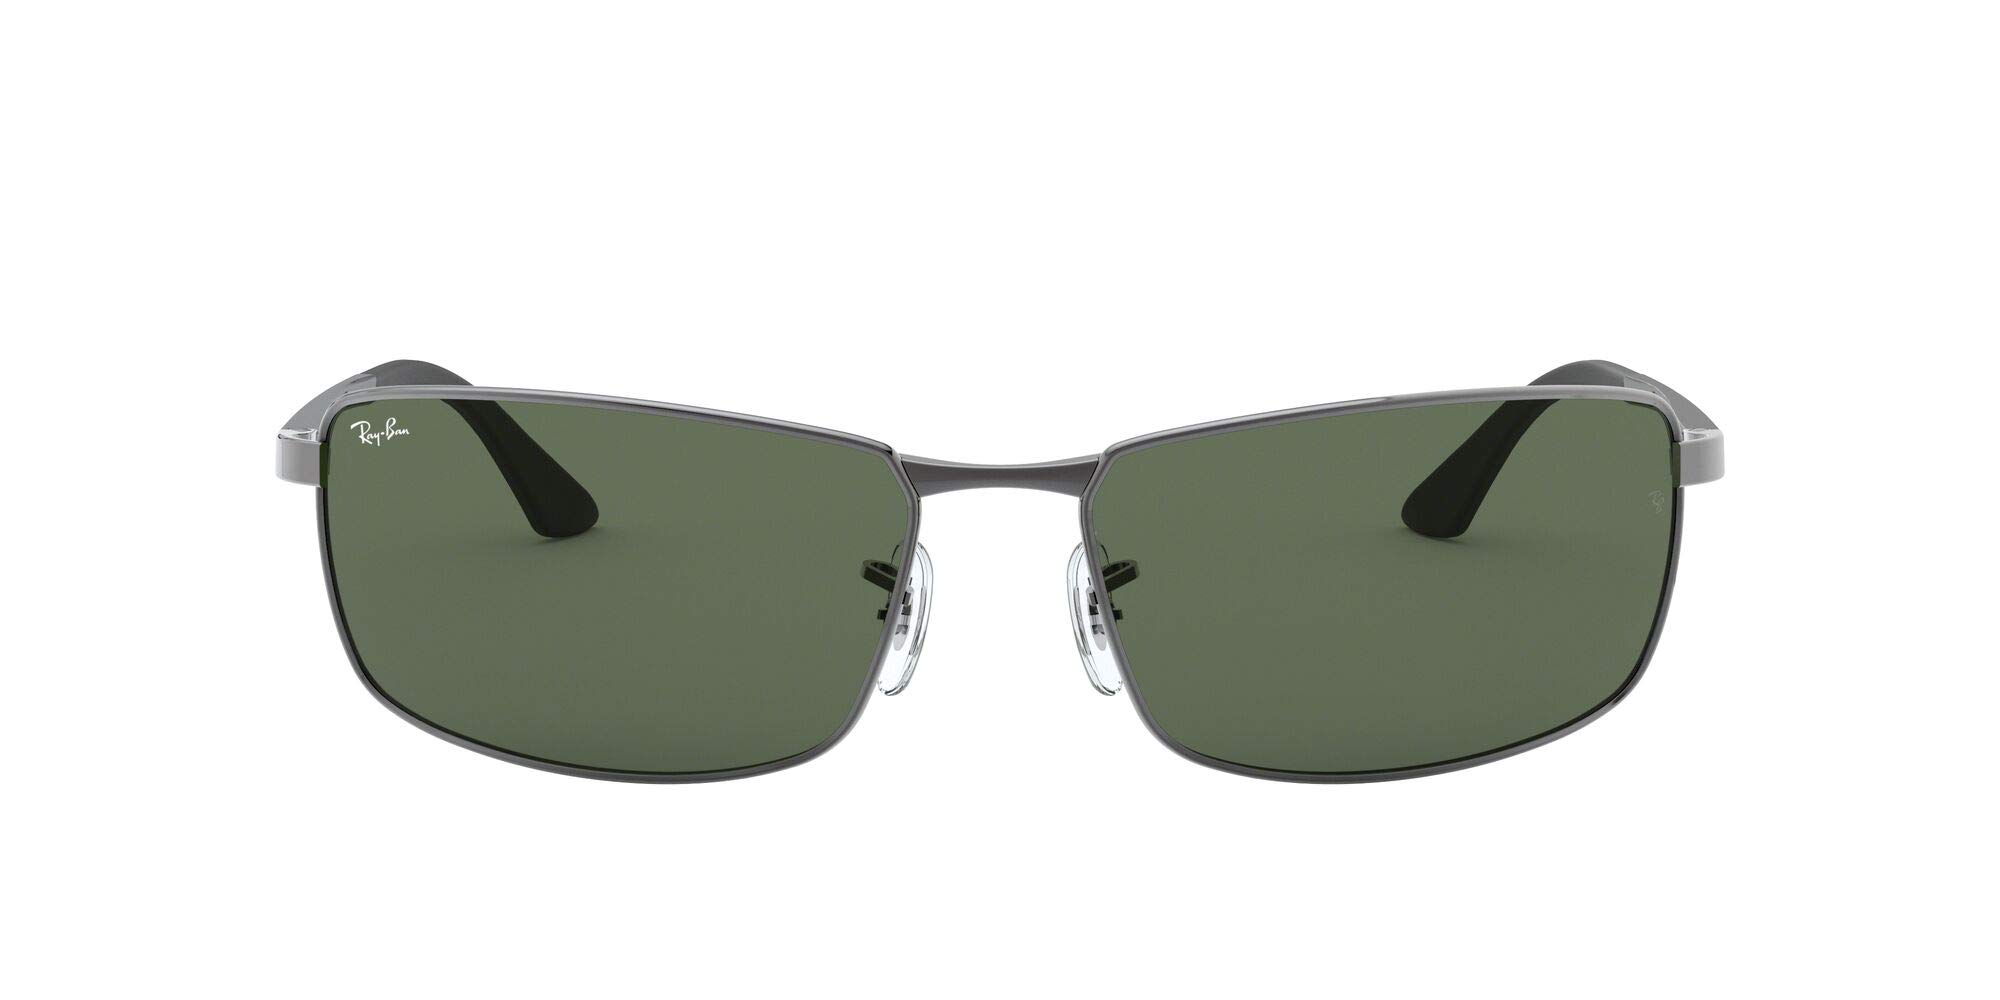 Ray-Ban Men's RB3498 Rectangular Metal Sunglasses